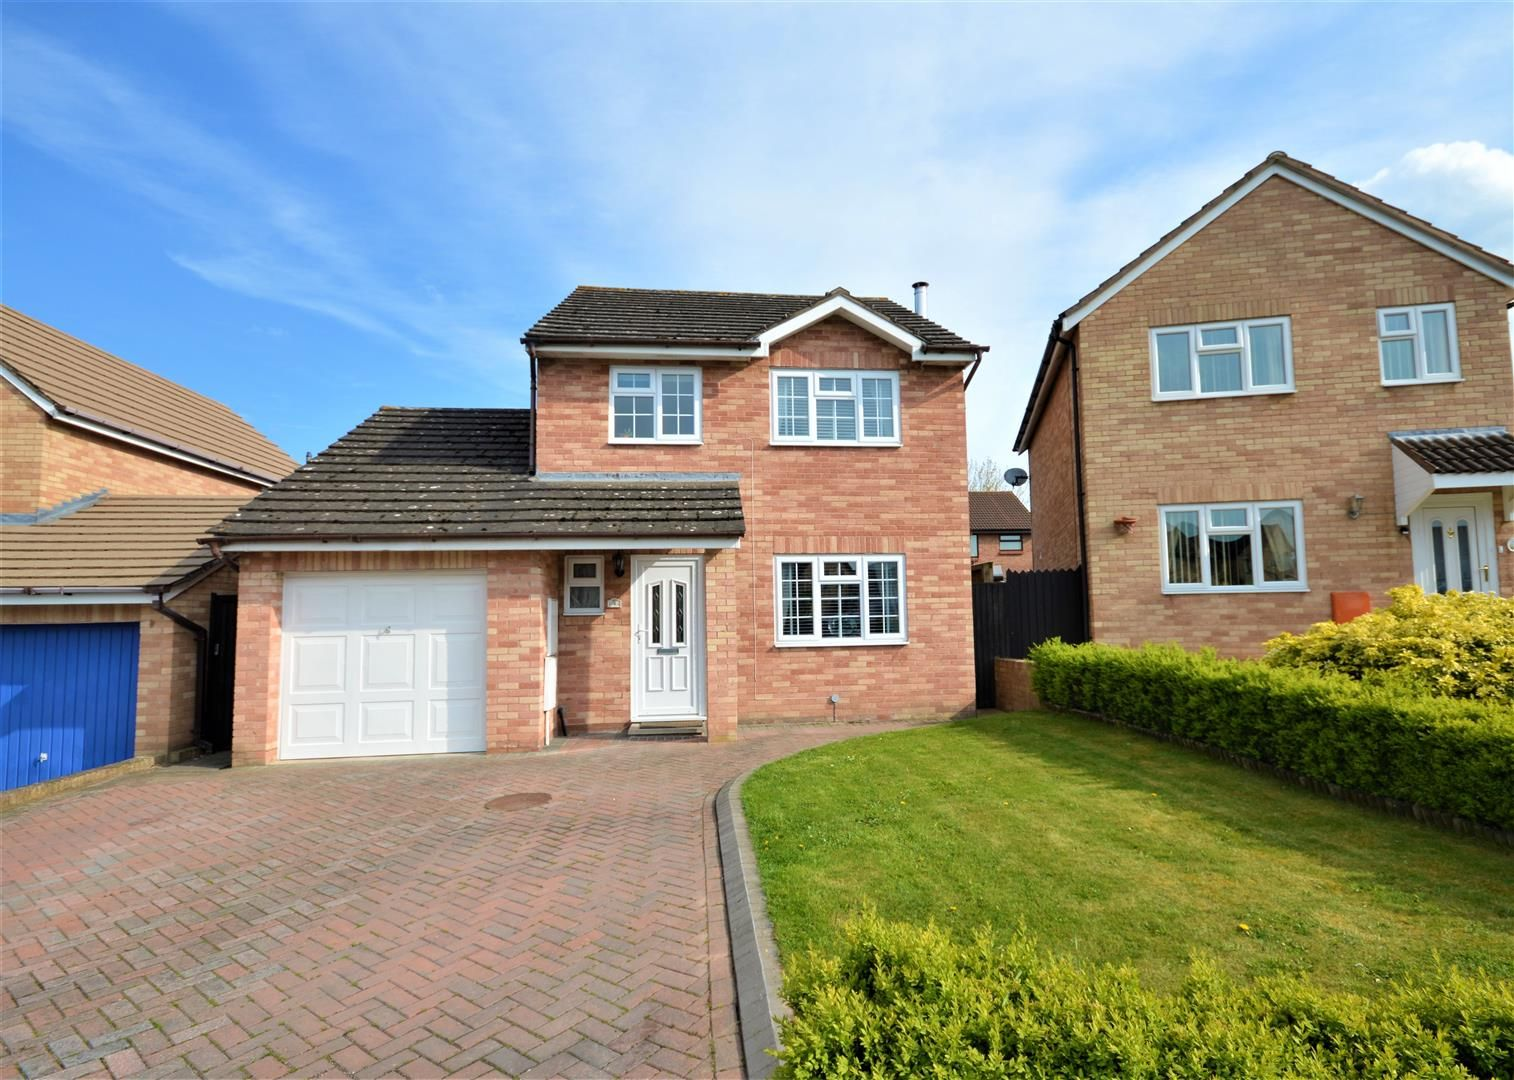 3 bed detached for sale in Belmont 1